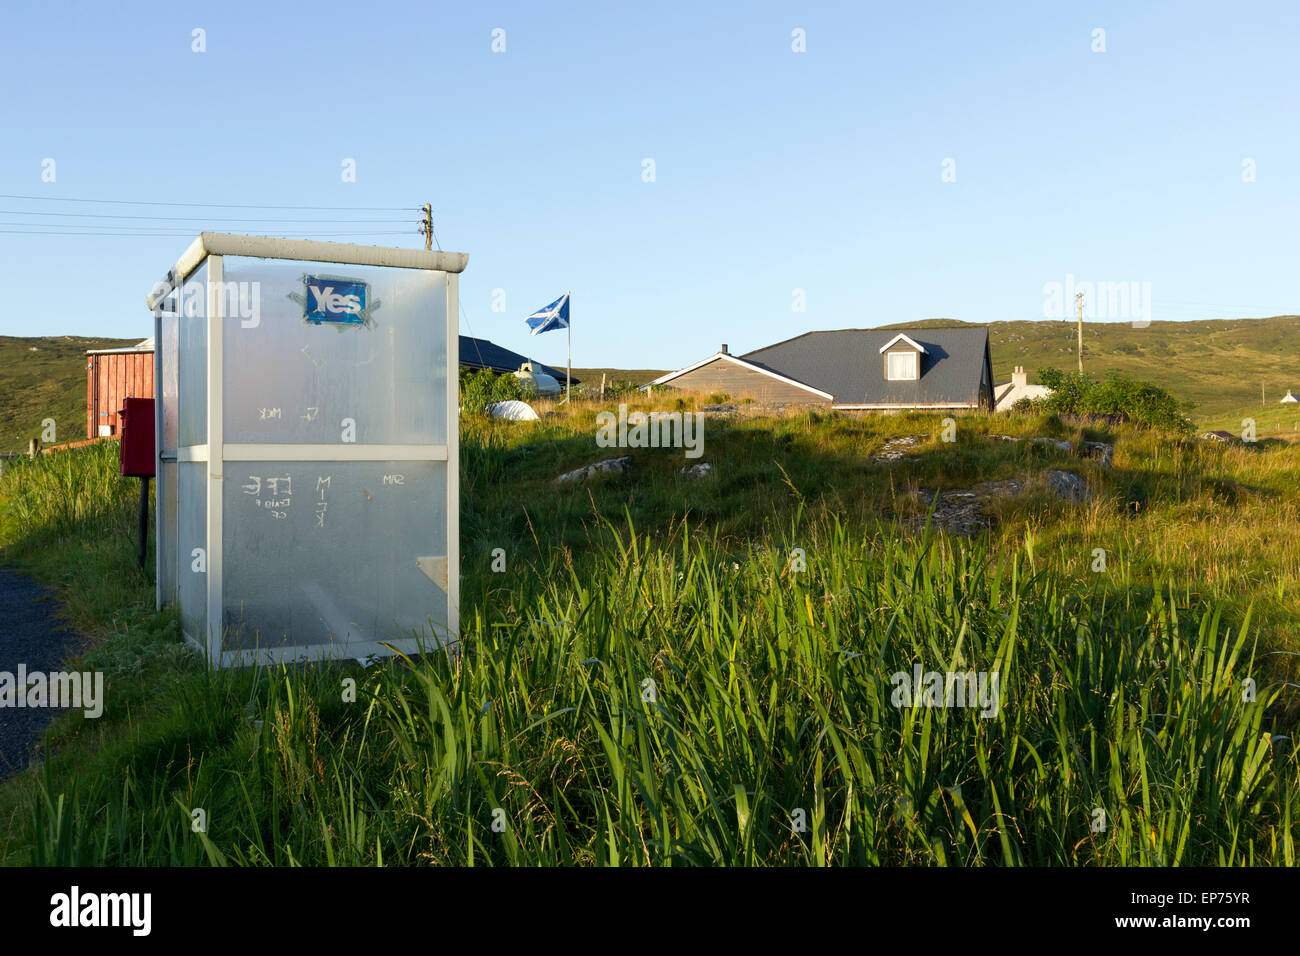 Isle Of Barra, Outer Hebrides, Yes Sticker On Bus Shelter with Scottish Saltire flag in background - Stock Image